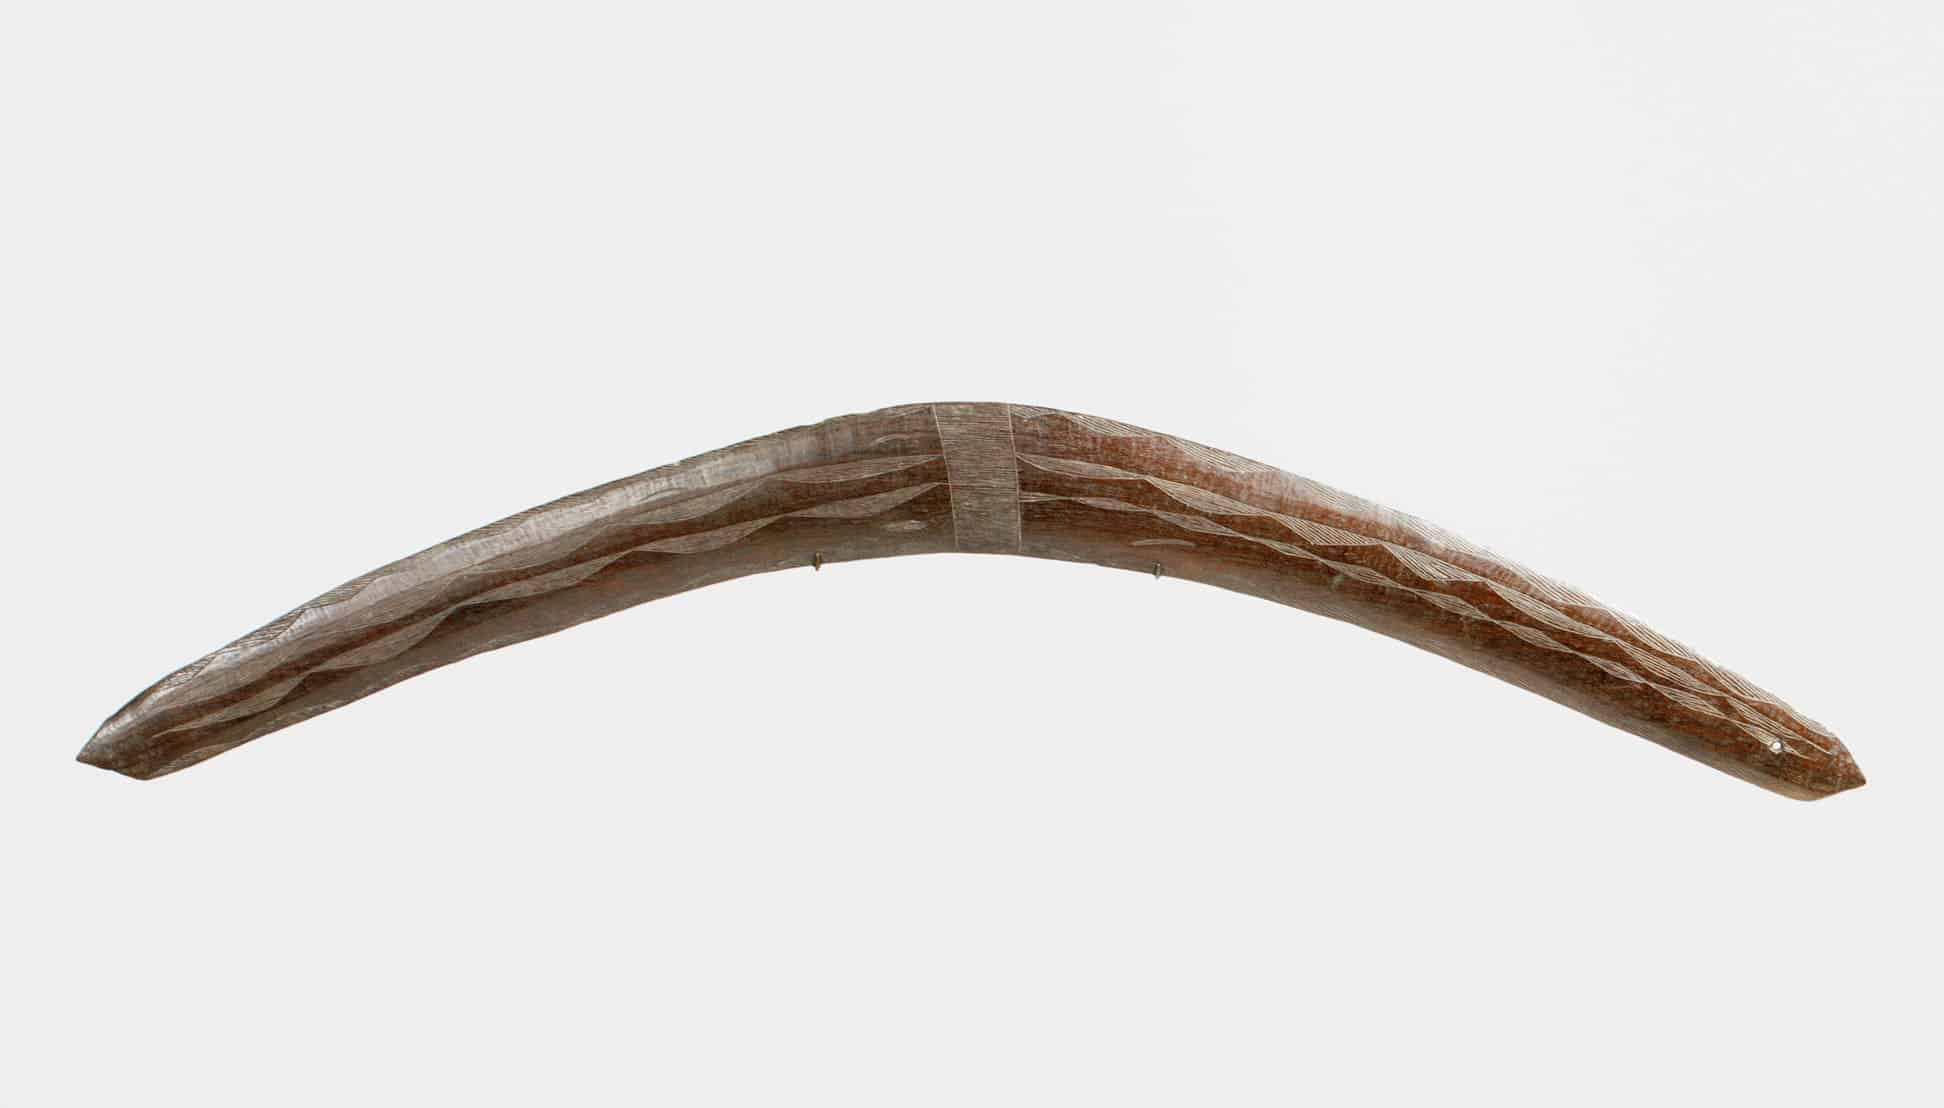 Queensland boomerang